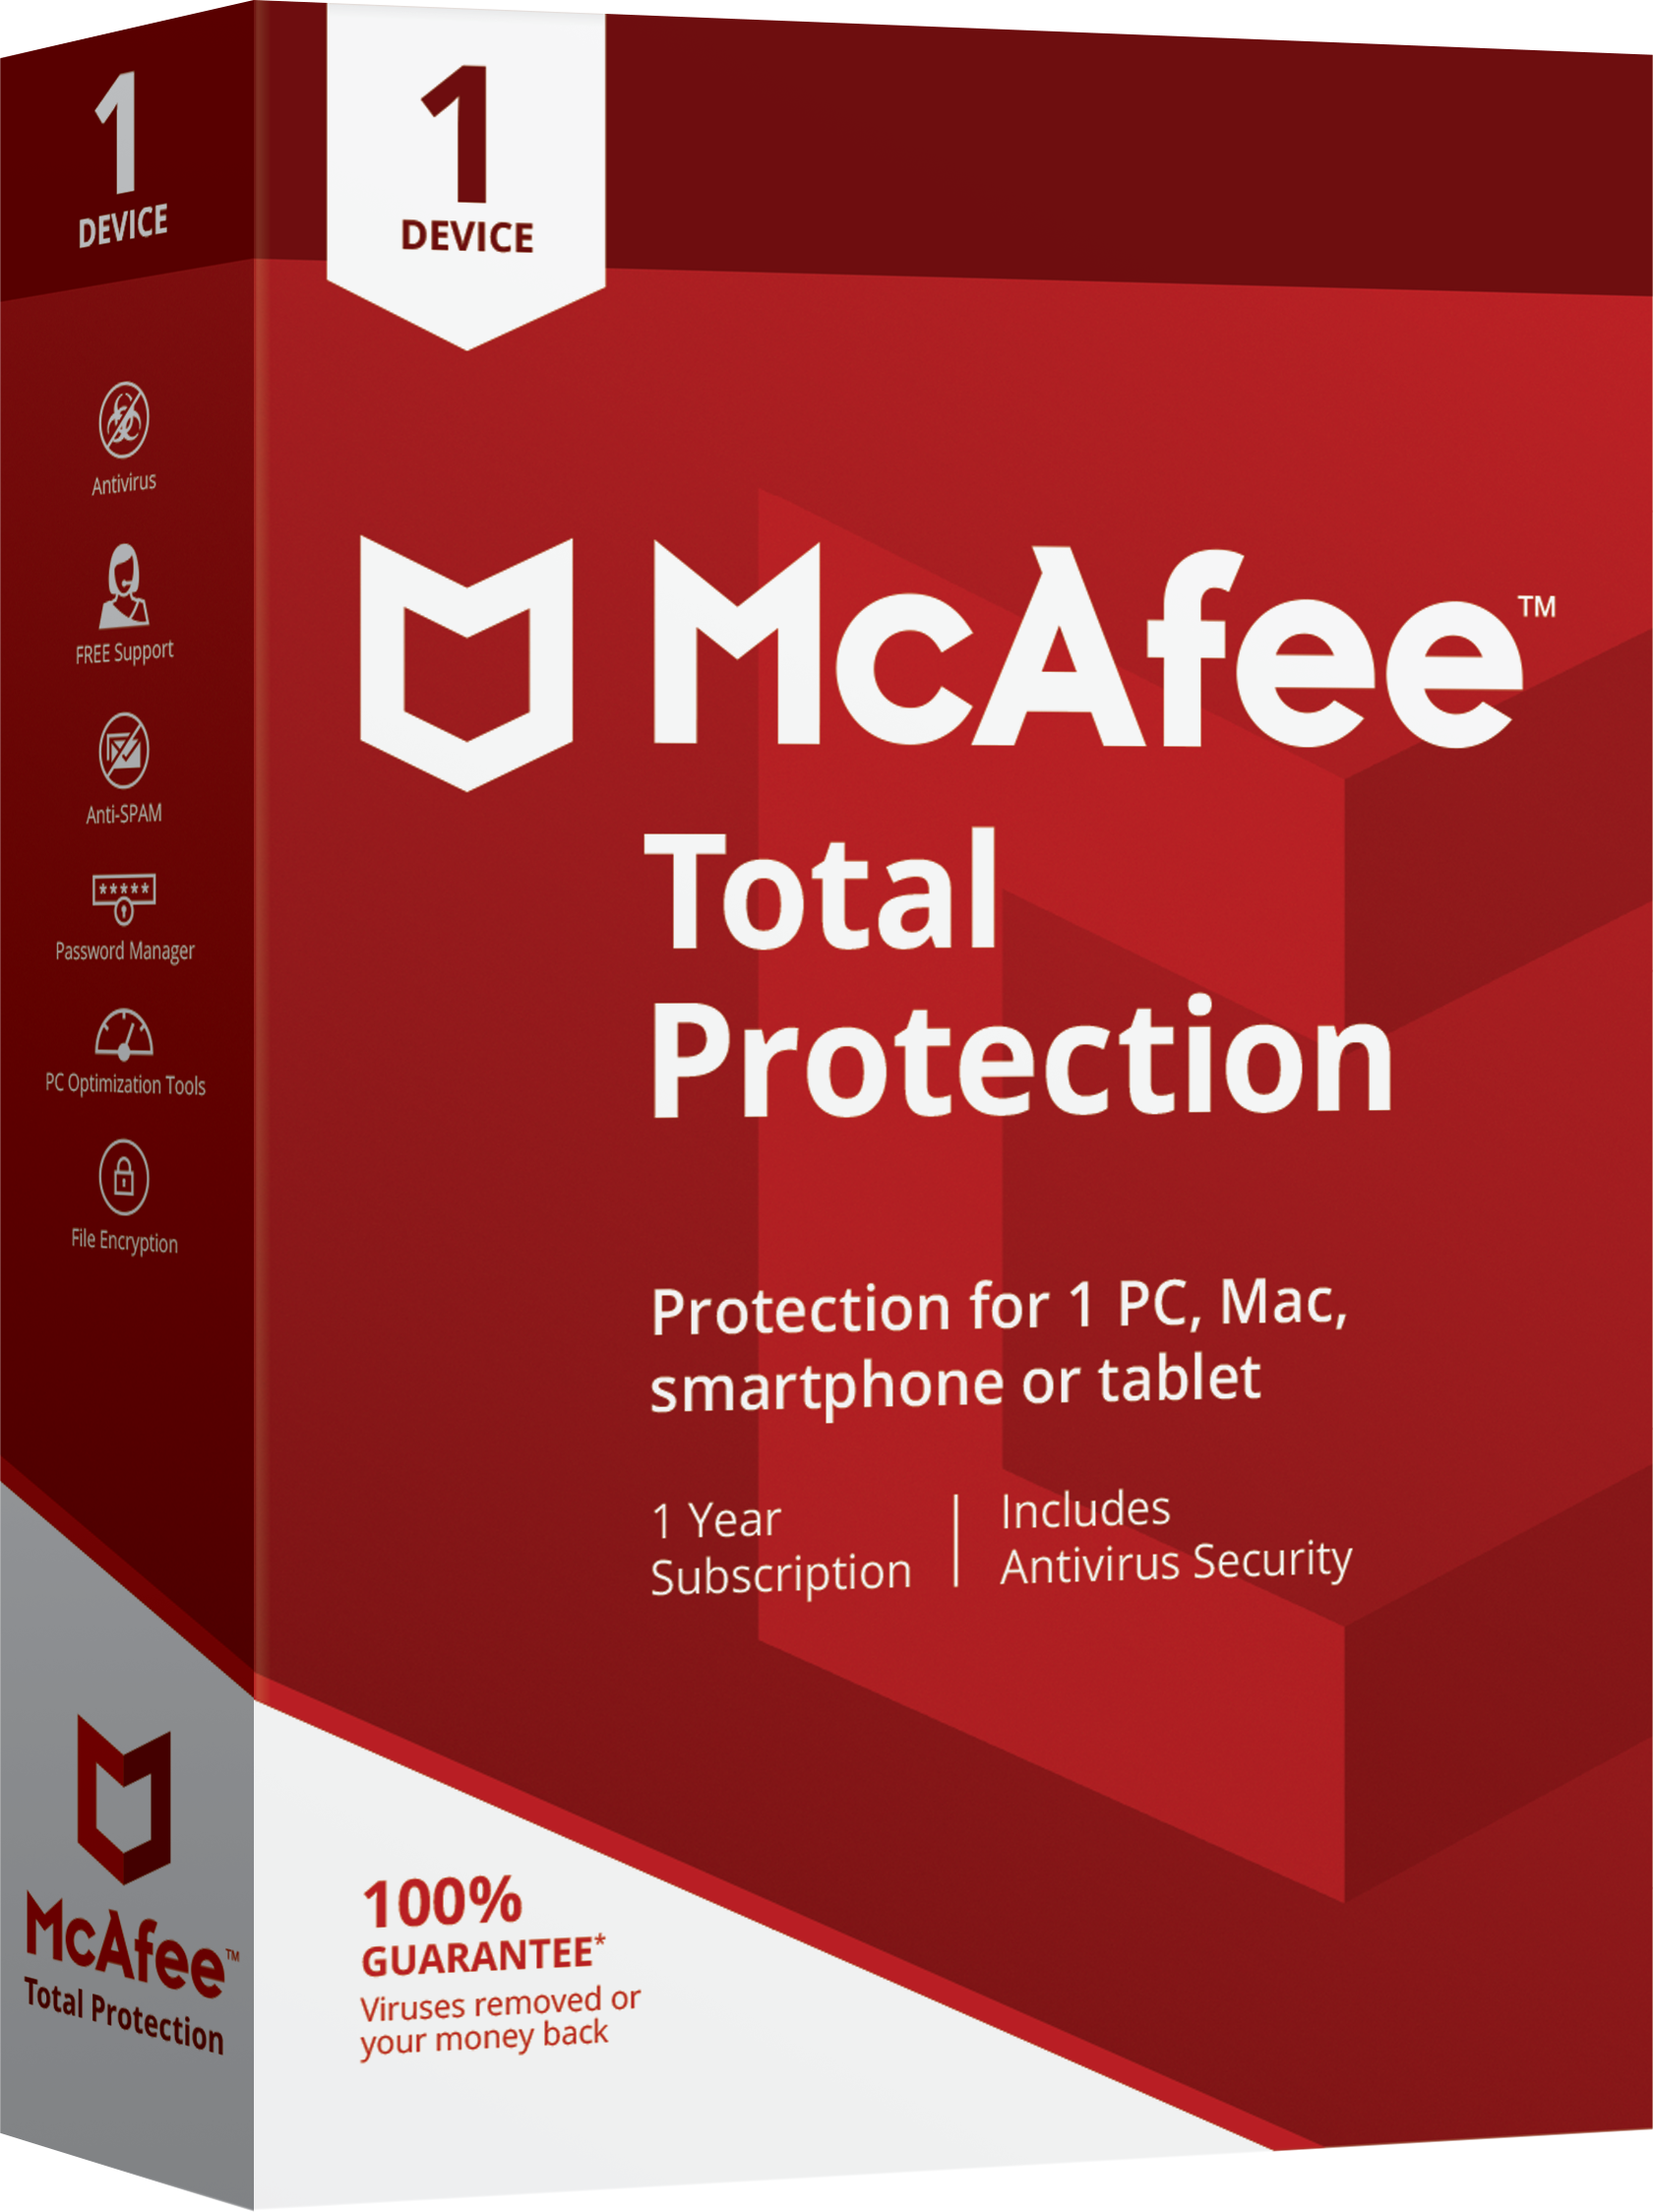 McAfee Total Protection - Virus Protection - 1 Year Subscription - 1 Device